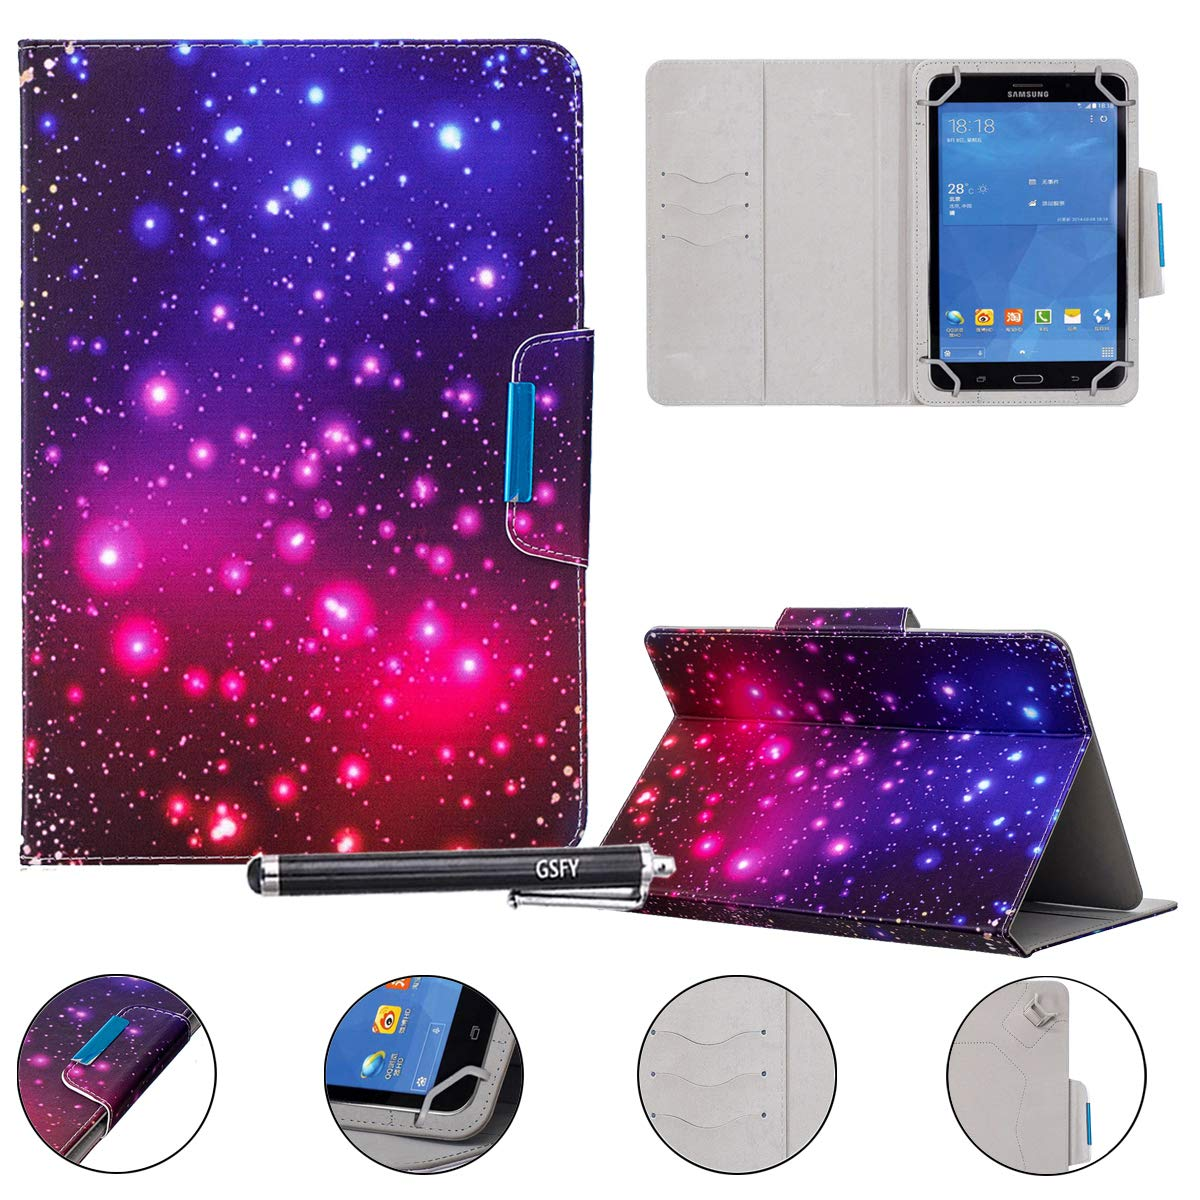 "Universal Case for 9-10.5 inch Tablet, Newshine Stand Folio Case Protective Cover for 9"" 10.1"" Touchscreen Tablet, with Multiple Viewing Angles, Card/Cash Pocket - Purple Twinkle"